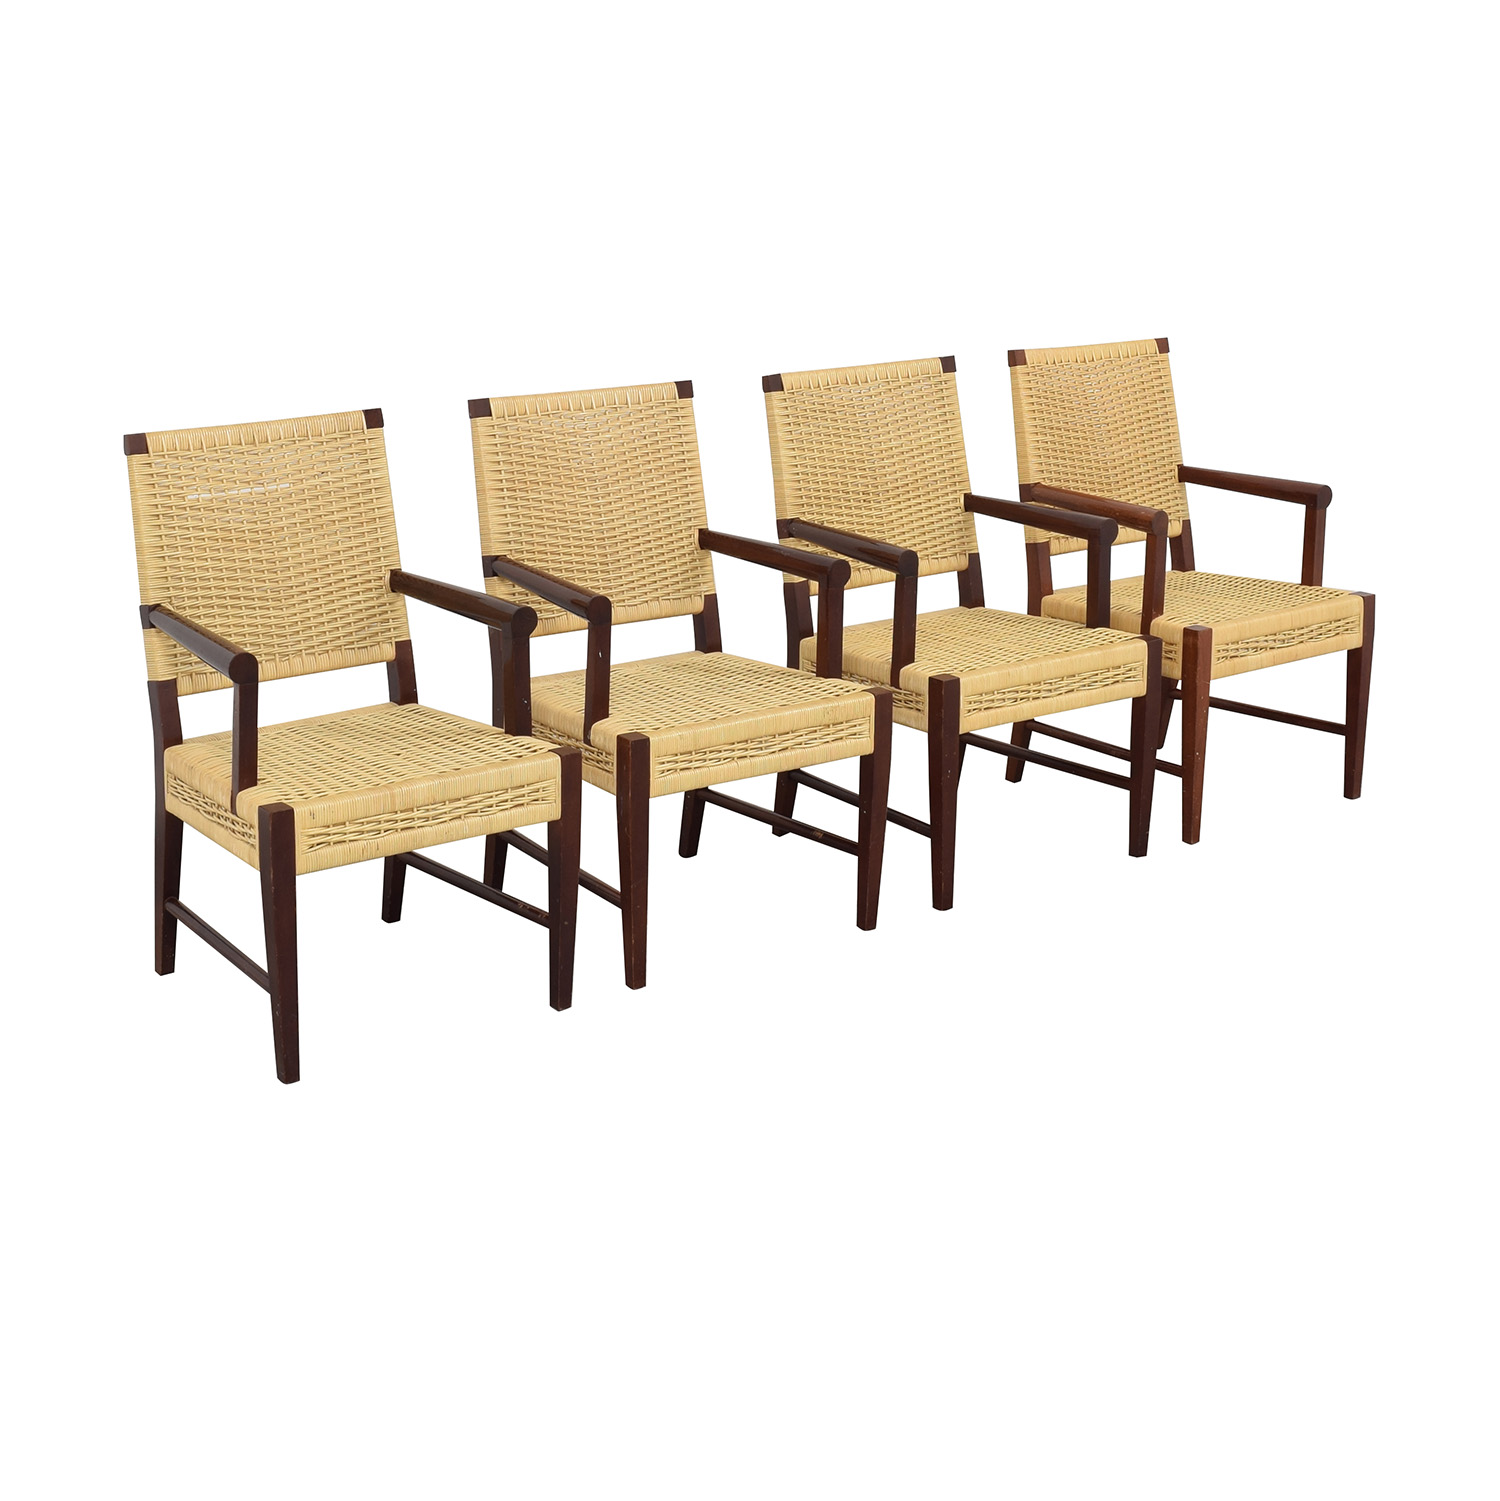 Donghia Donghia Dining Chairs in Merbau Wood with Raffia Weaving nj